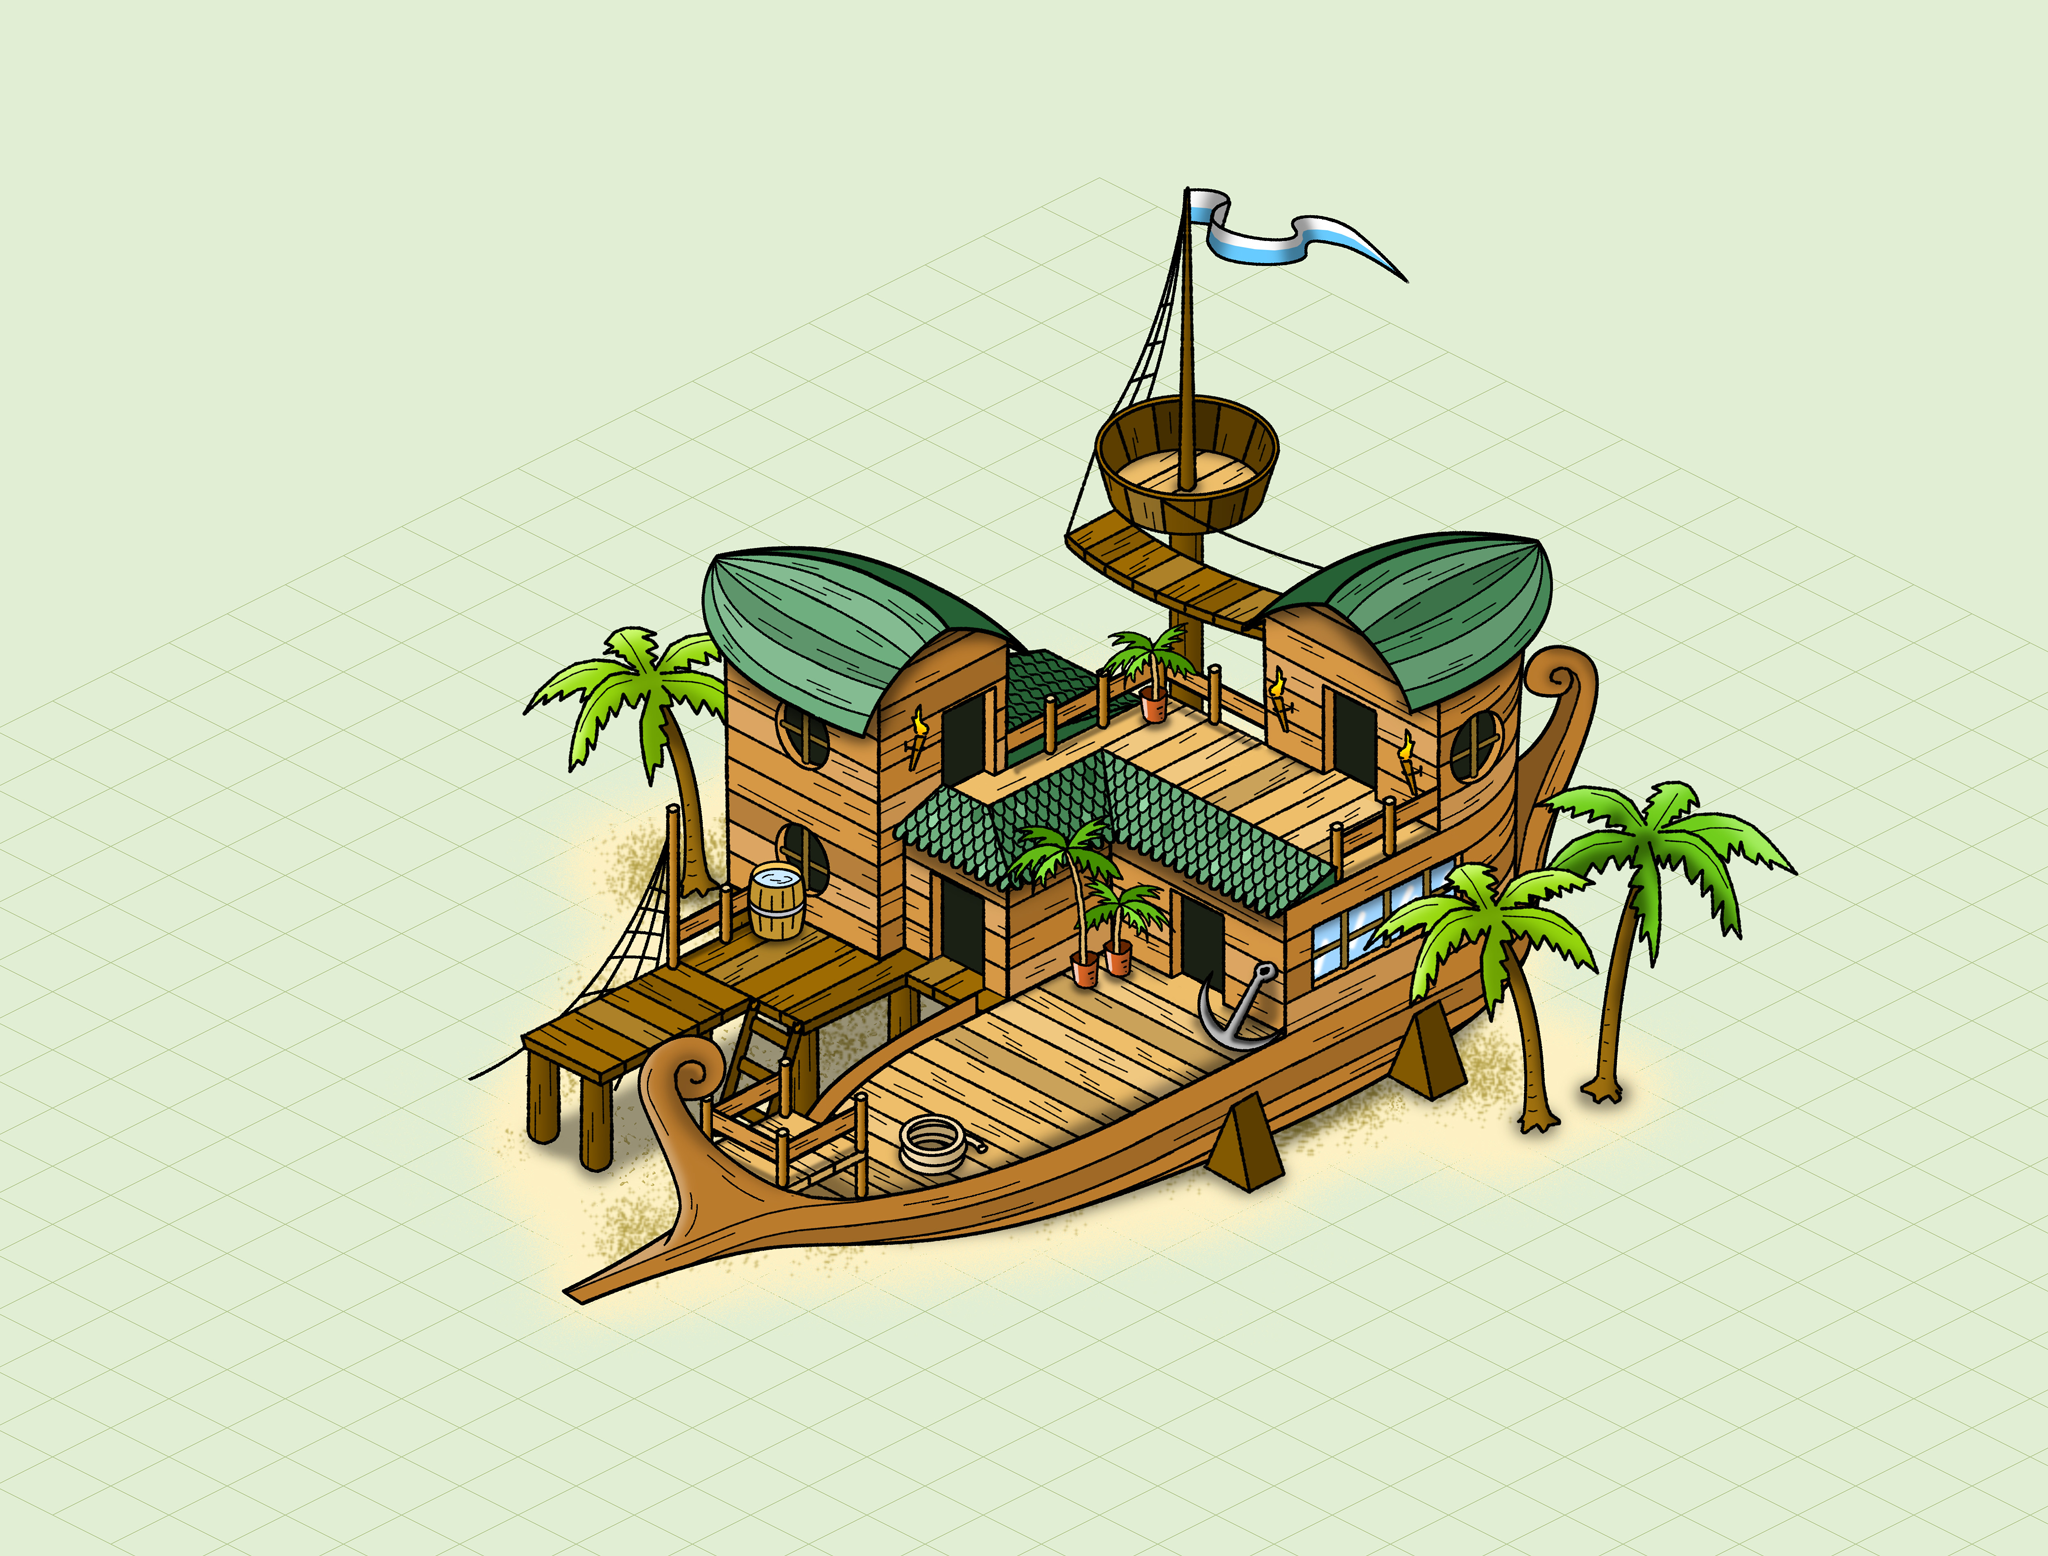 #ship from the game #travians at www.travians.com